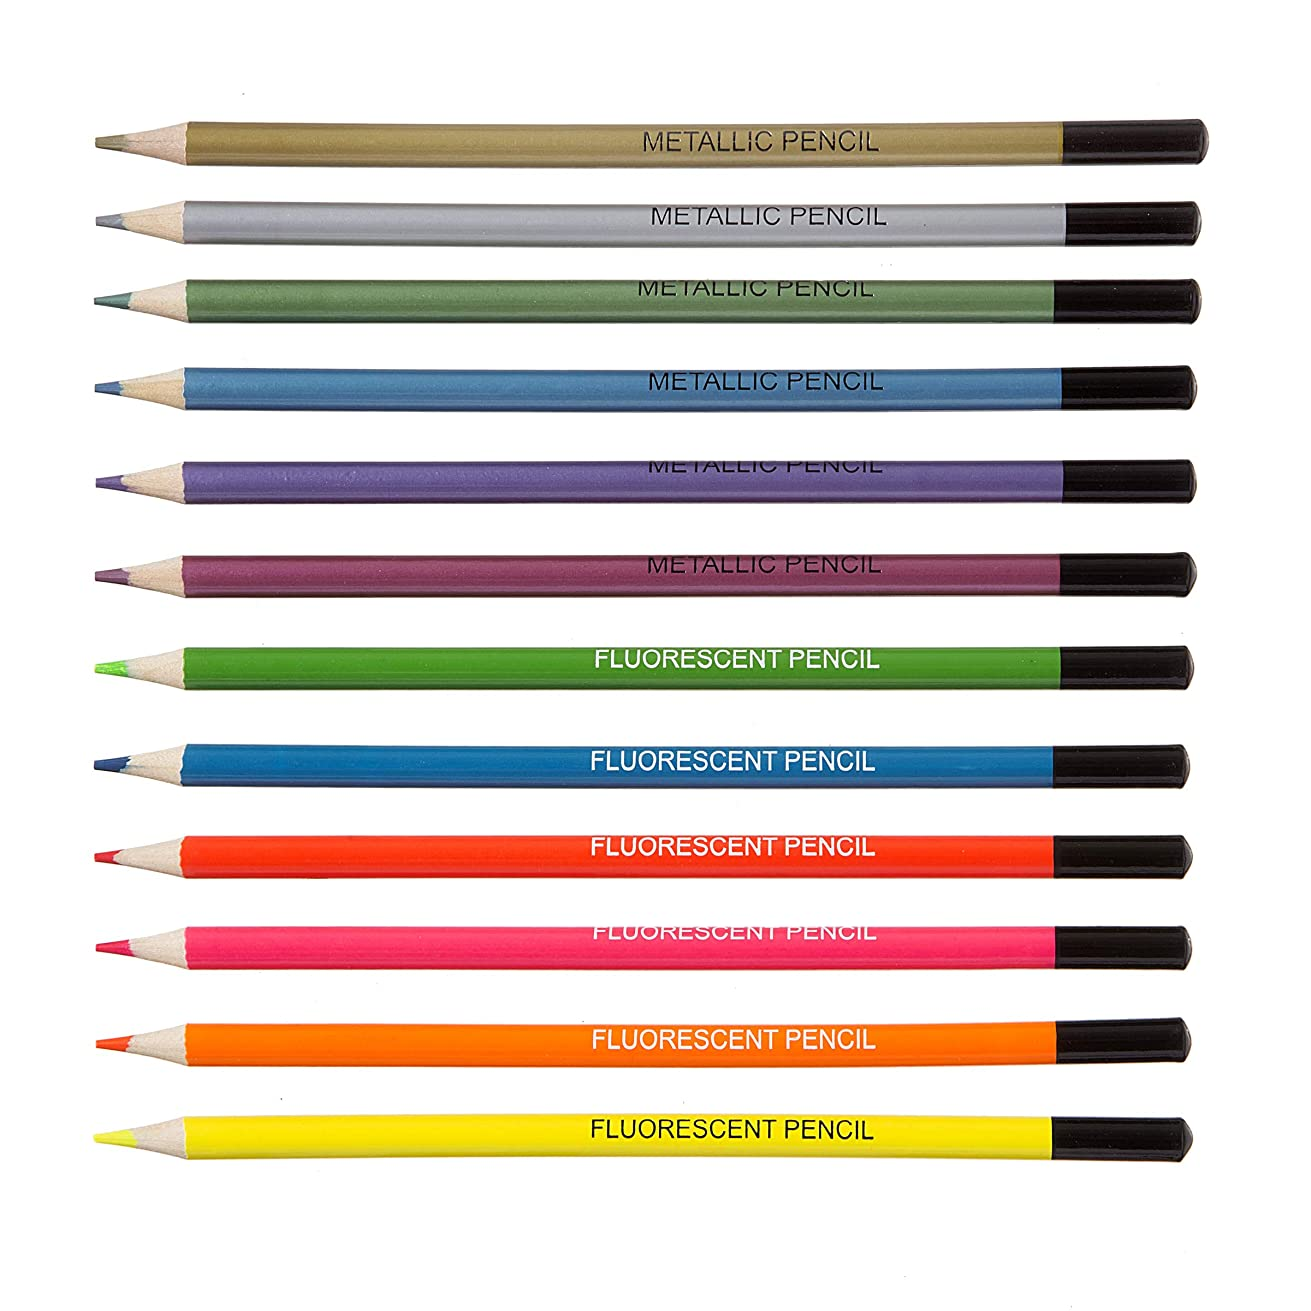 Darice 30062837 Studio 71 Metallic & Fluorescent, 12 Pieces Pencils Assorted